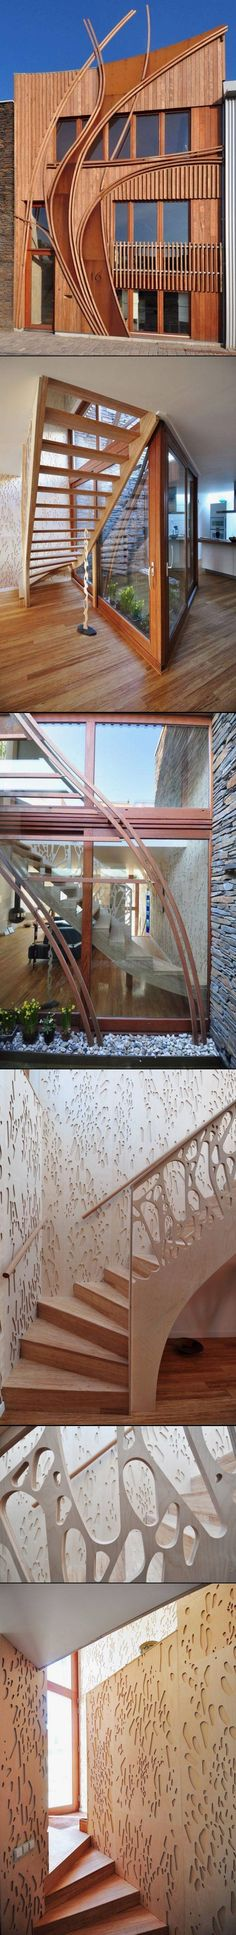 Great House With Stylish Wooden Facade And Stunning Interior By 24H Architects |  Http://